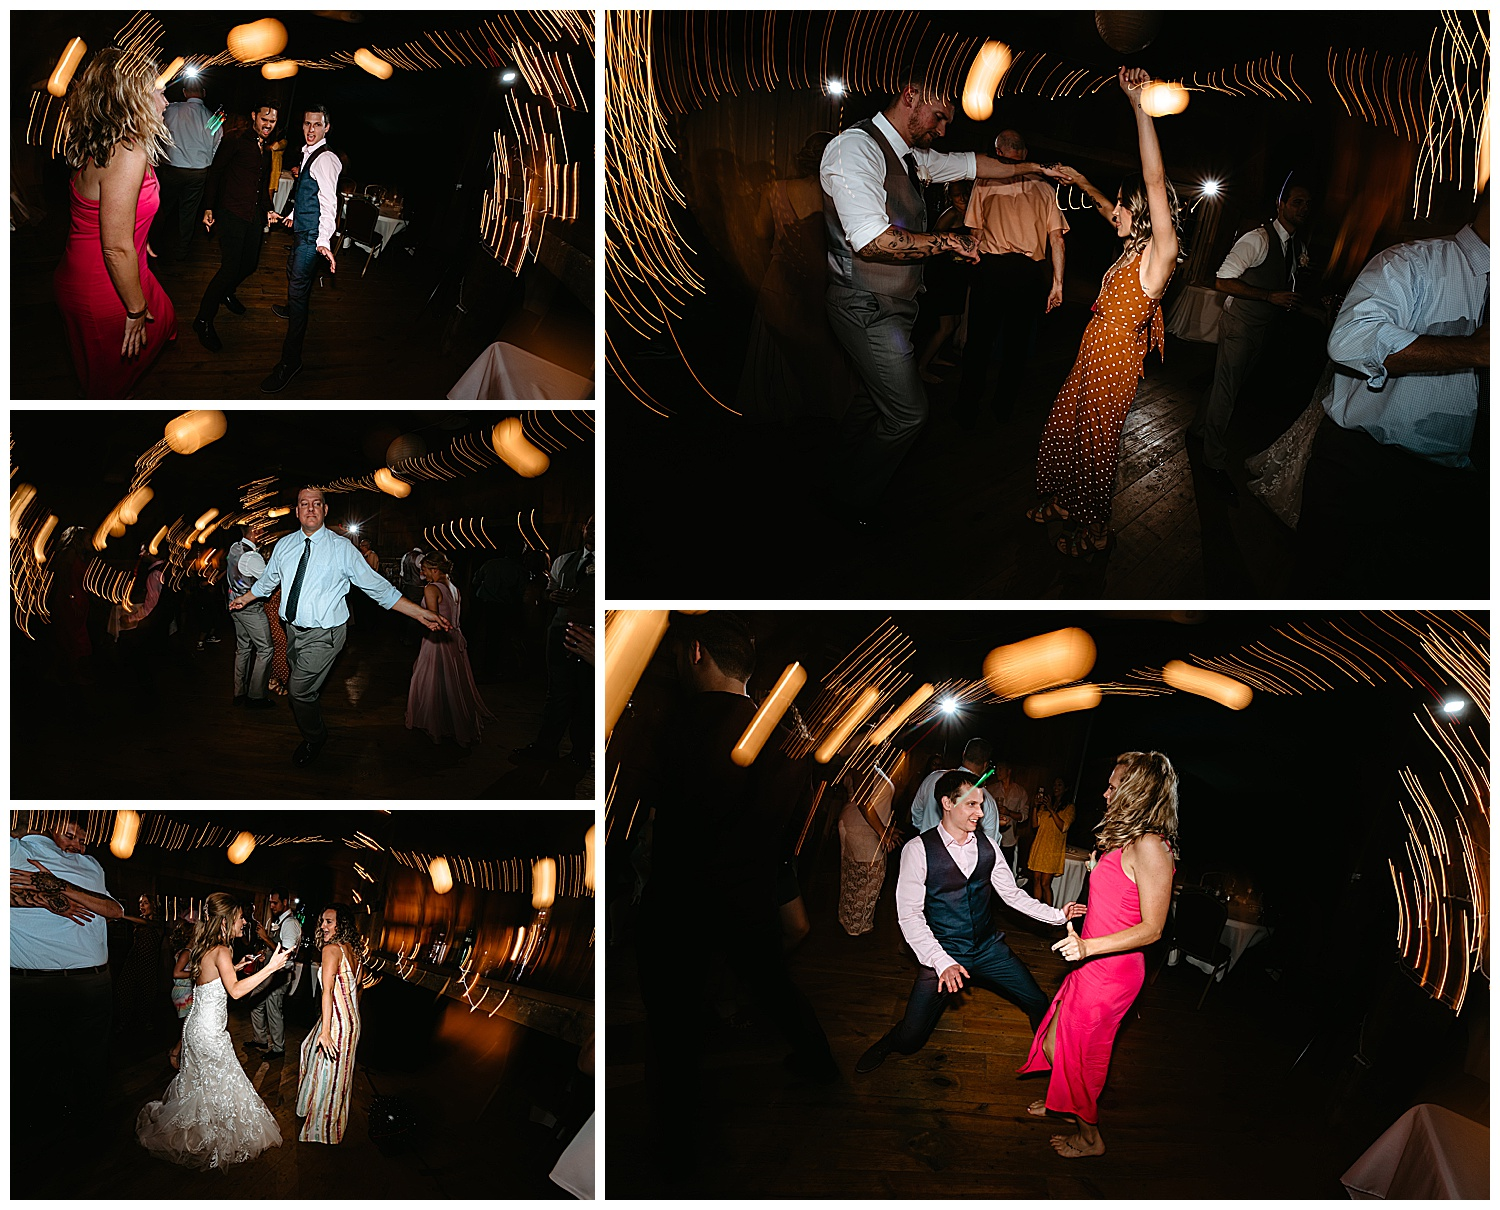 NEPA-Bloomgsburg-Wedding-Photographer-at-The-Barn-in-State-College-PA_0030.jpg